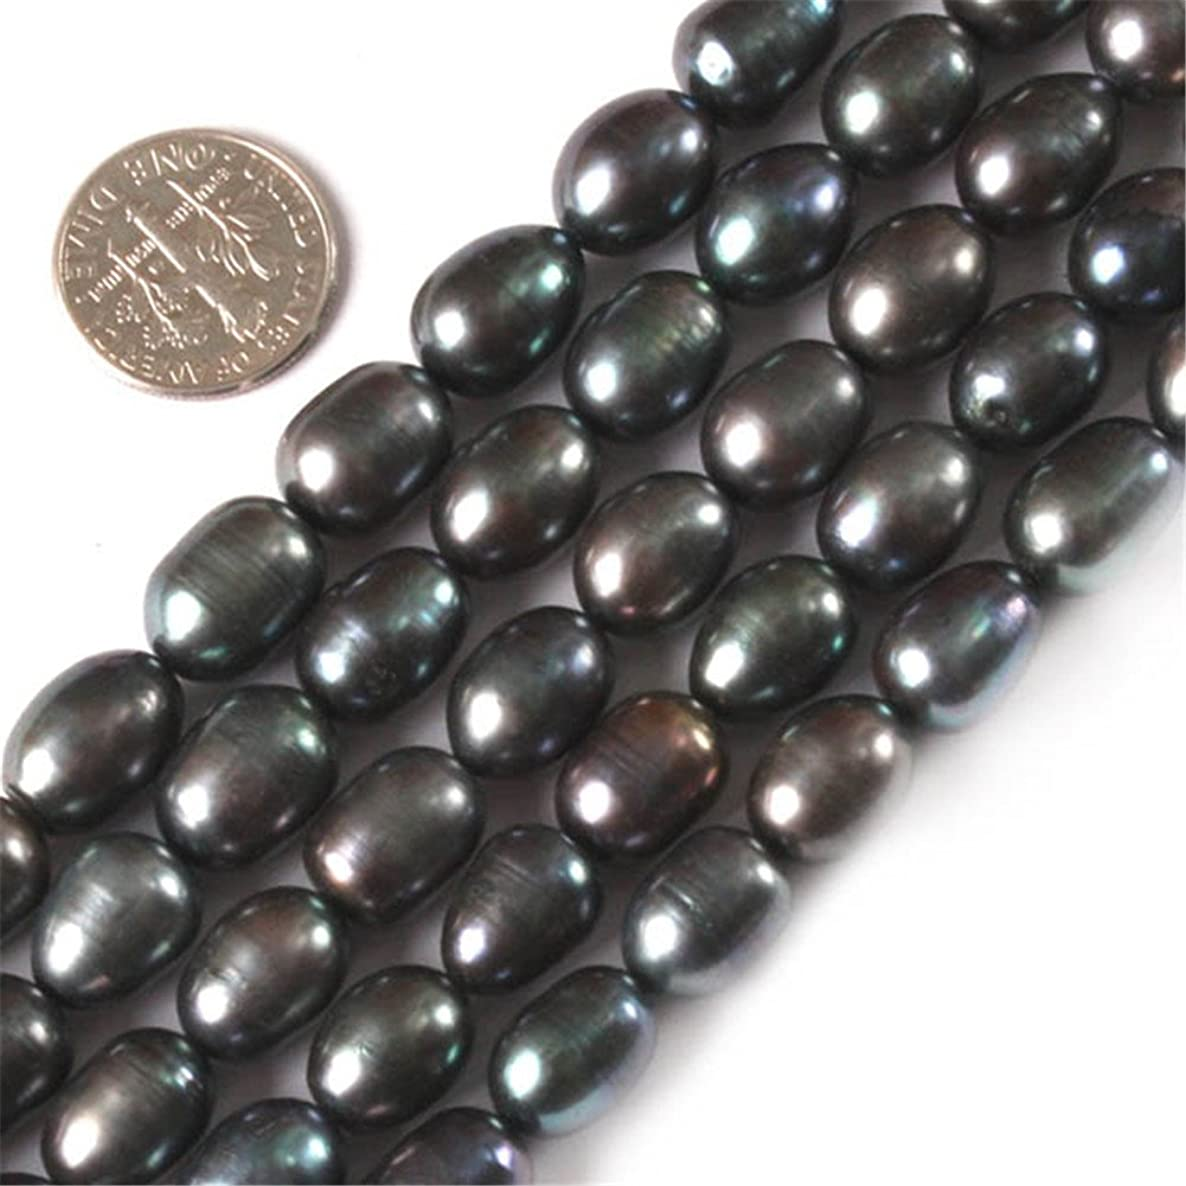 GEM-inside Black Freshwater Cultured Pearl Gemstone Loose Beads Energy Power Beads For Jewelry Making Potato Shape 9-10x10-12mm 15